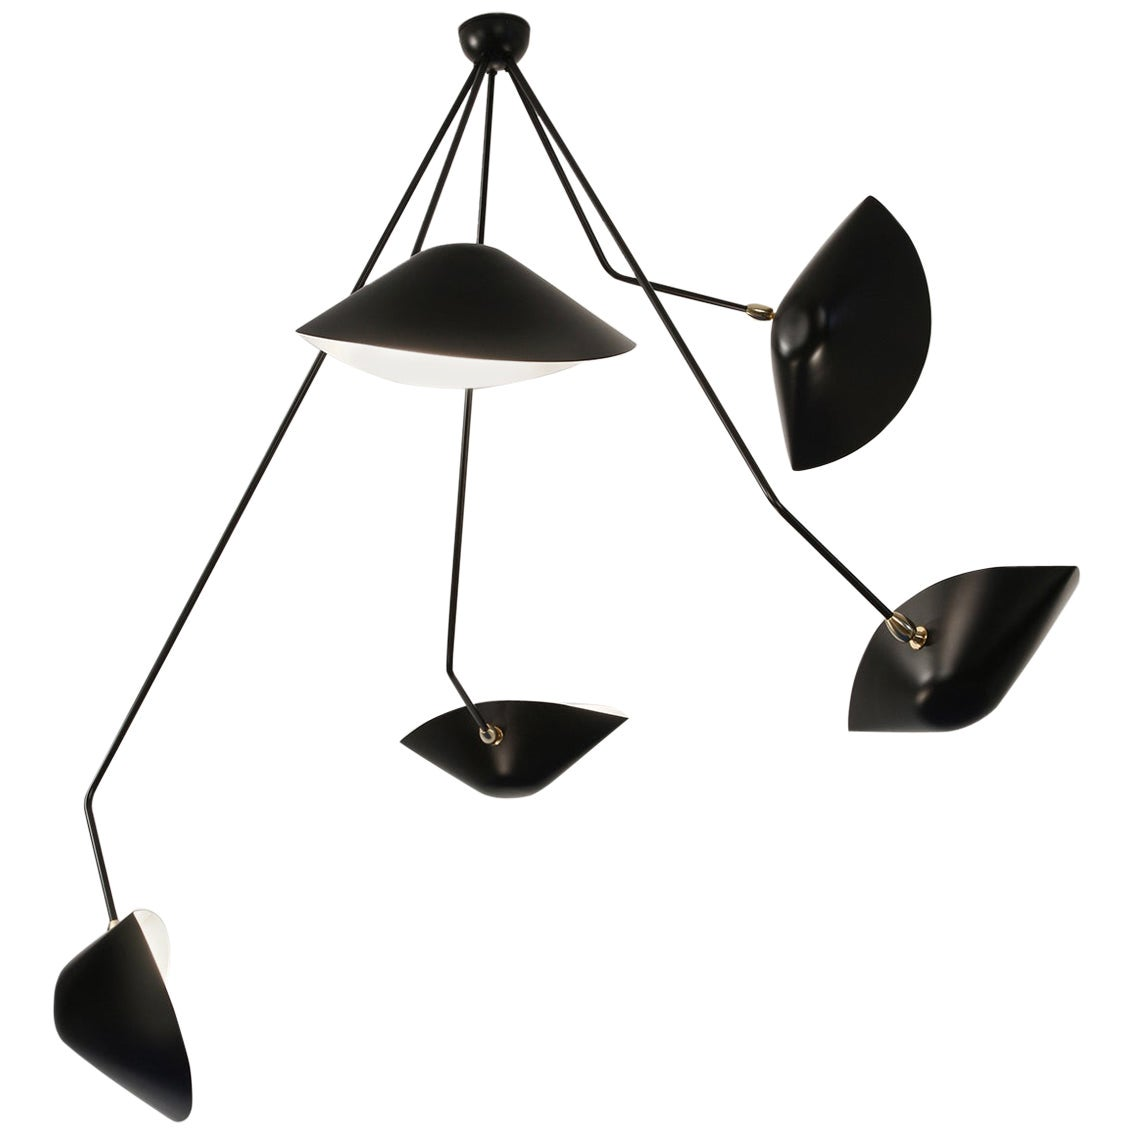 Serge Mouille Modern Black Five Curved Fixed Arms Spider Ceiling Lamp